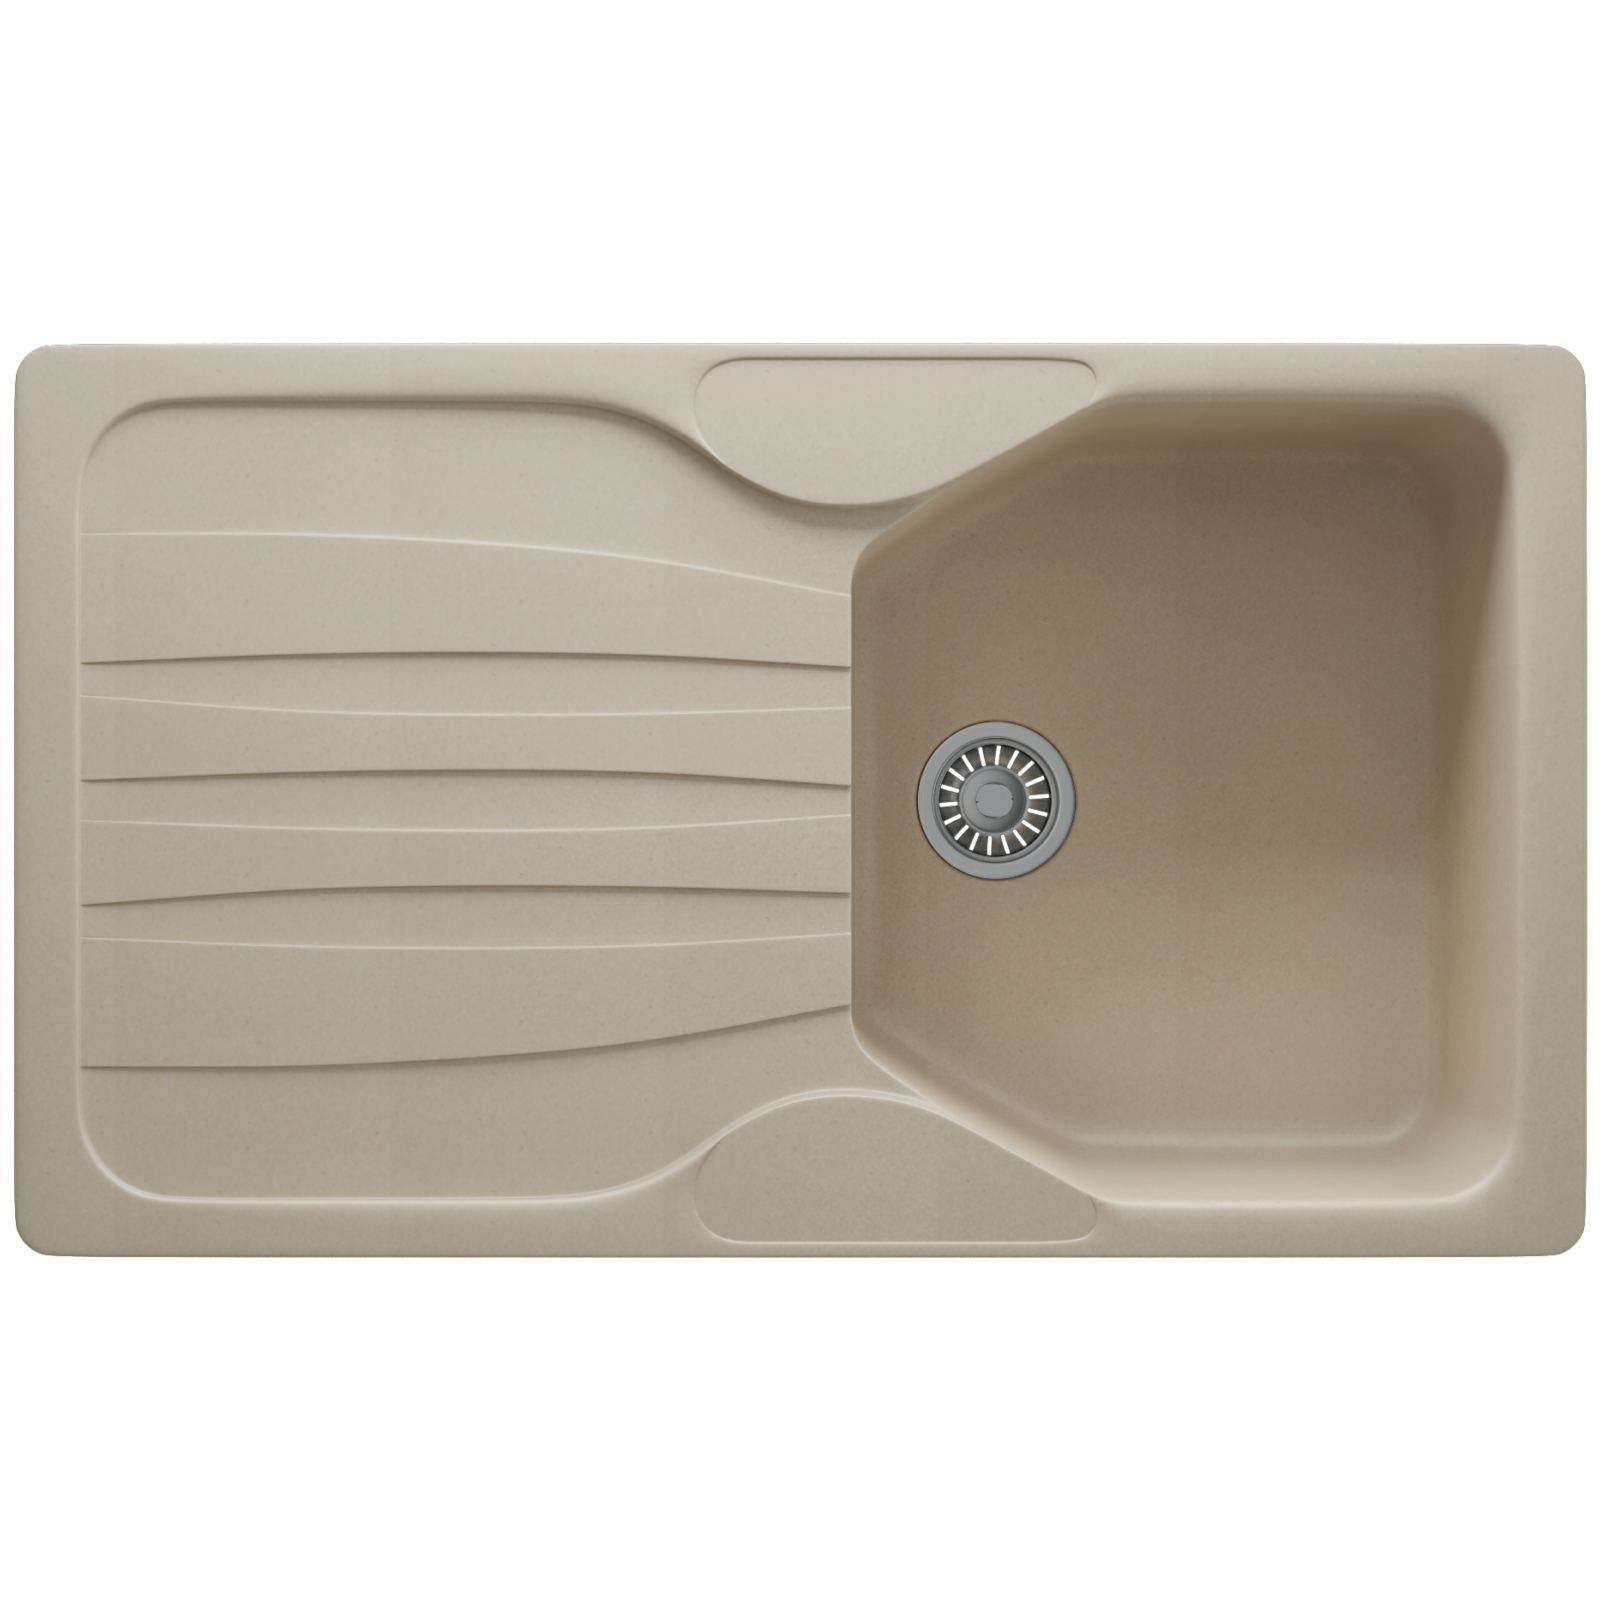 Franke Calypso Sink : Franke Calypso COG 611 Fragranite Coffee 1.0 Bowl Kitchen Inset Sink ...